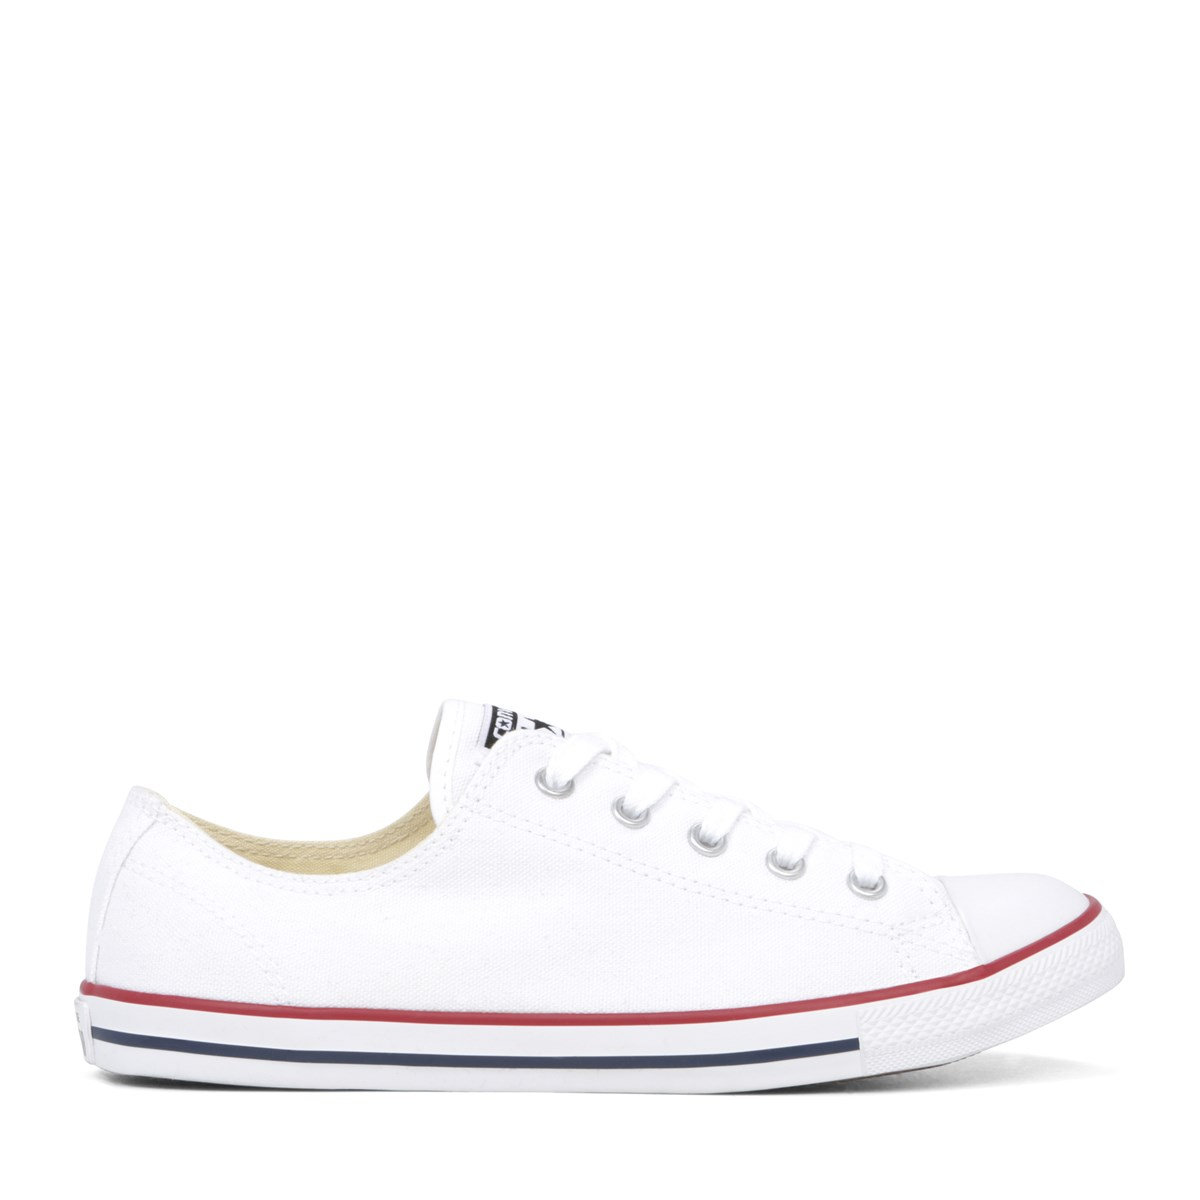 Womens Chuck Taylor All Star Dainty Sneakers in White